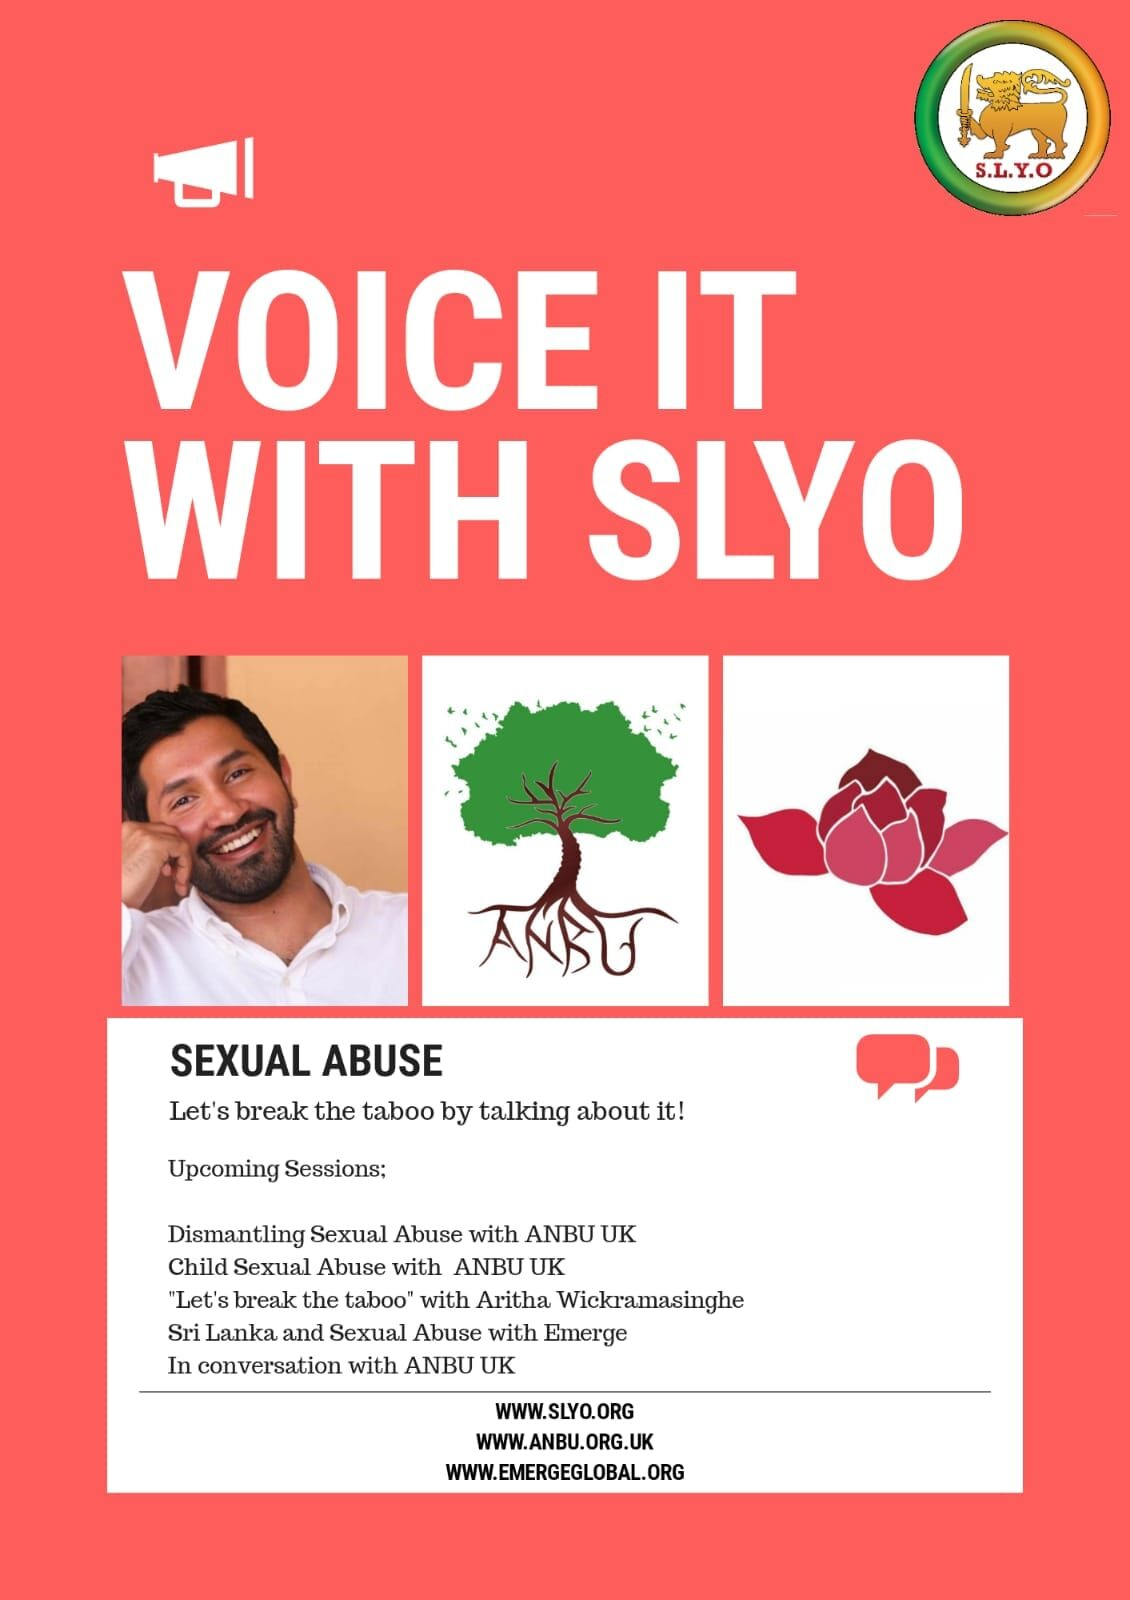 Voice it with SLYO